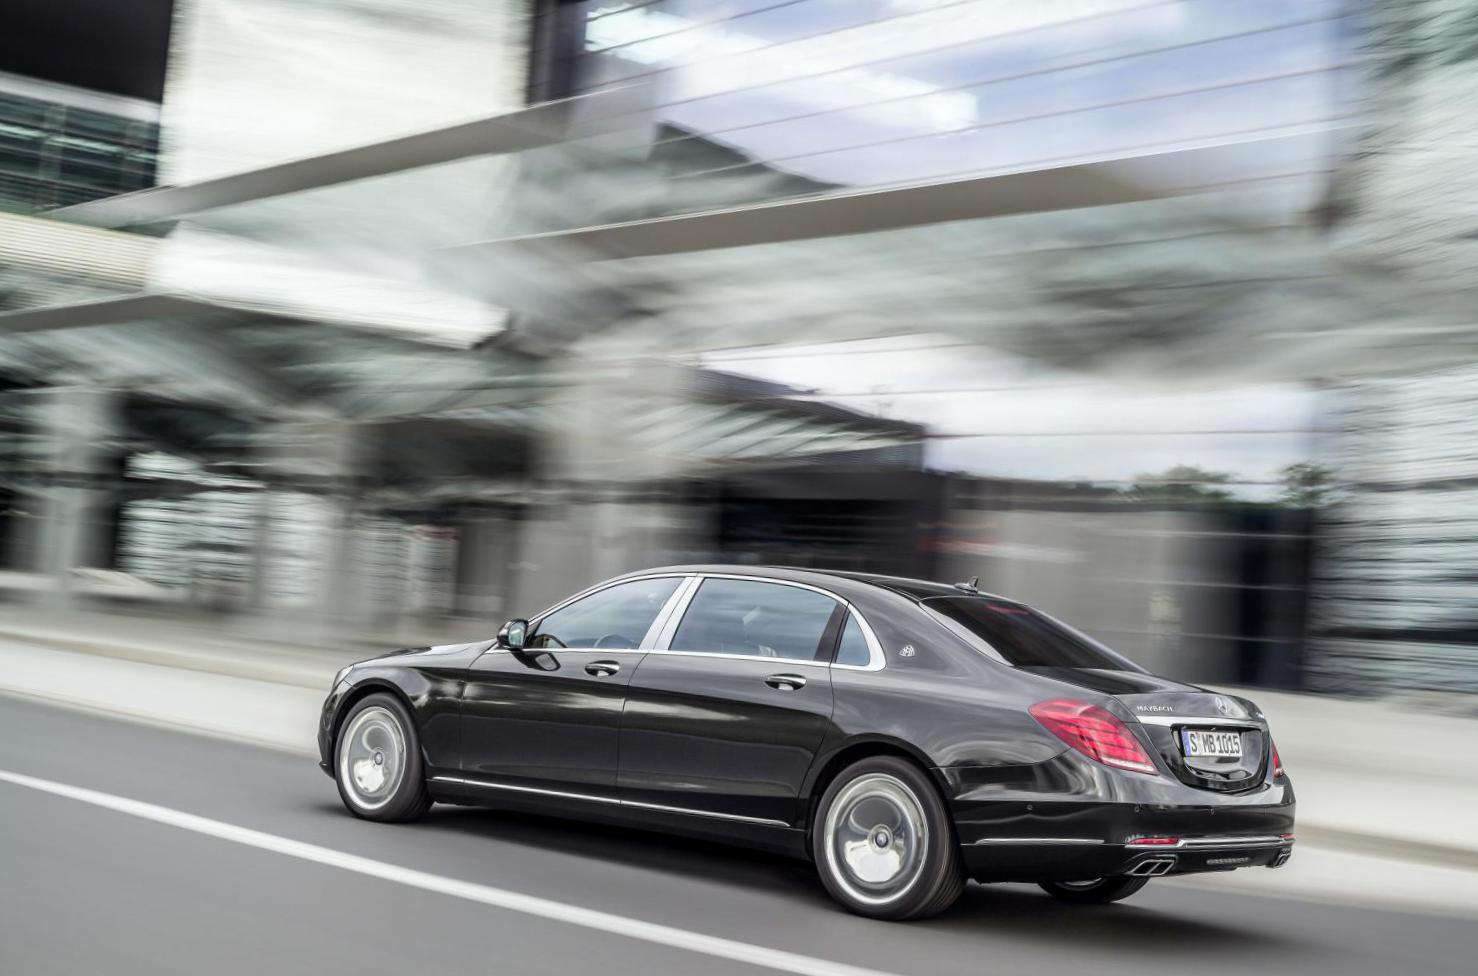 Maybach S-Class Mercedes sale 2011